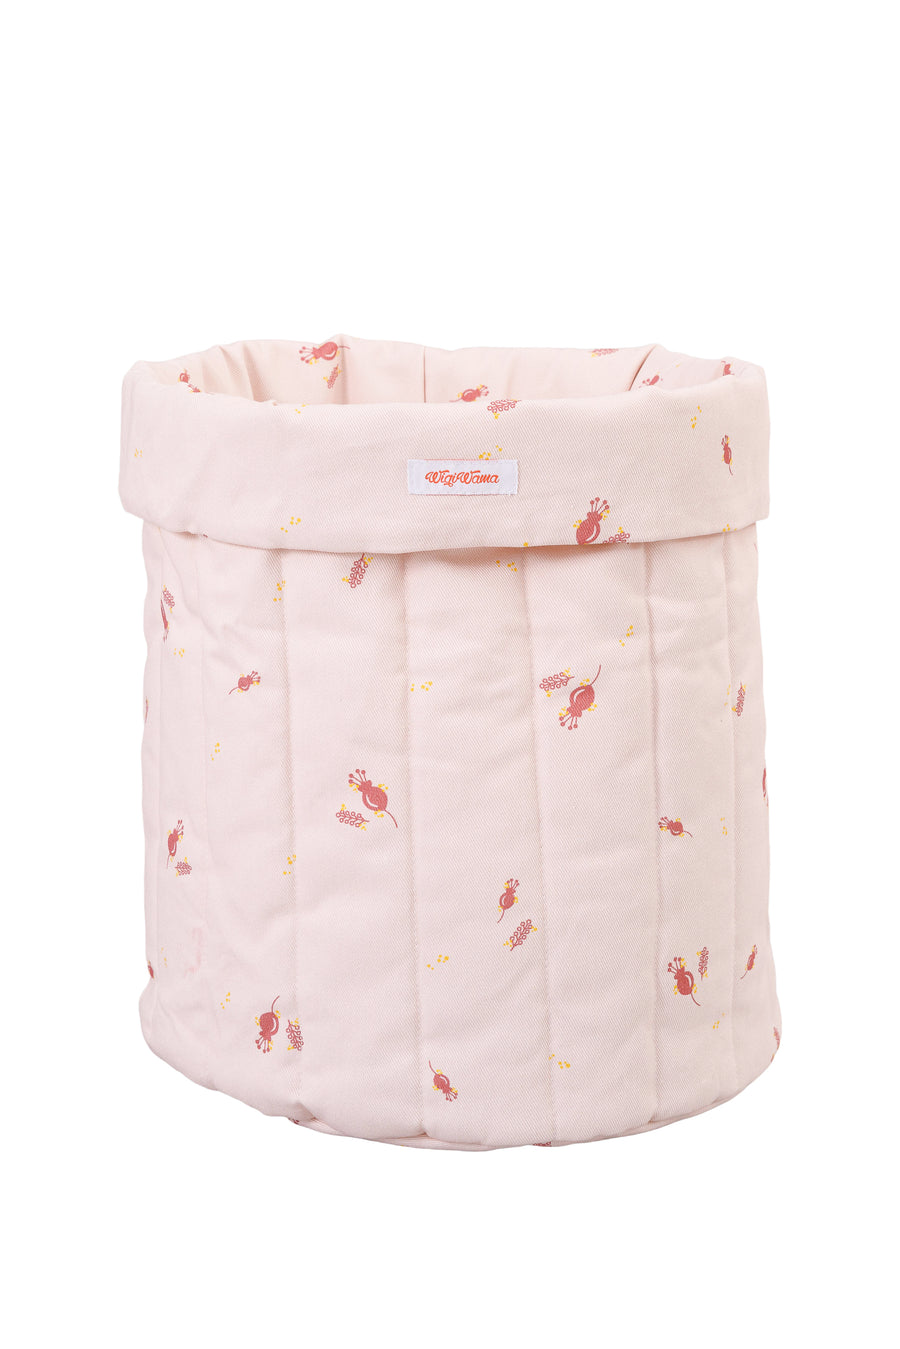 Misty Rose Toy Bag